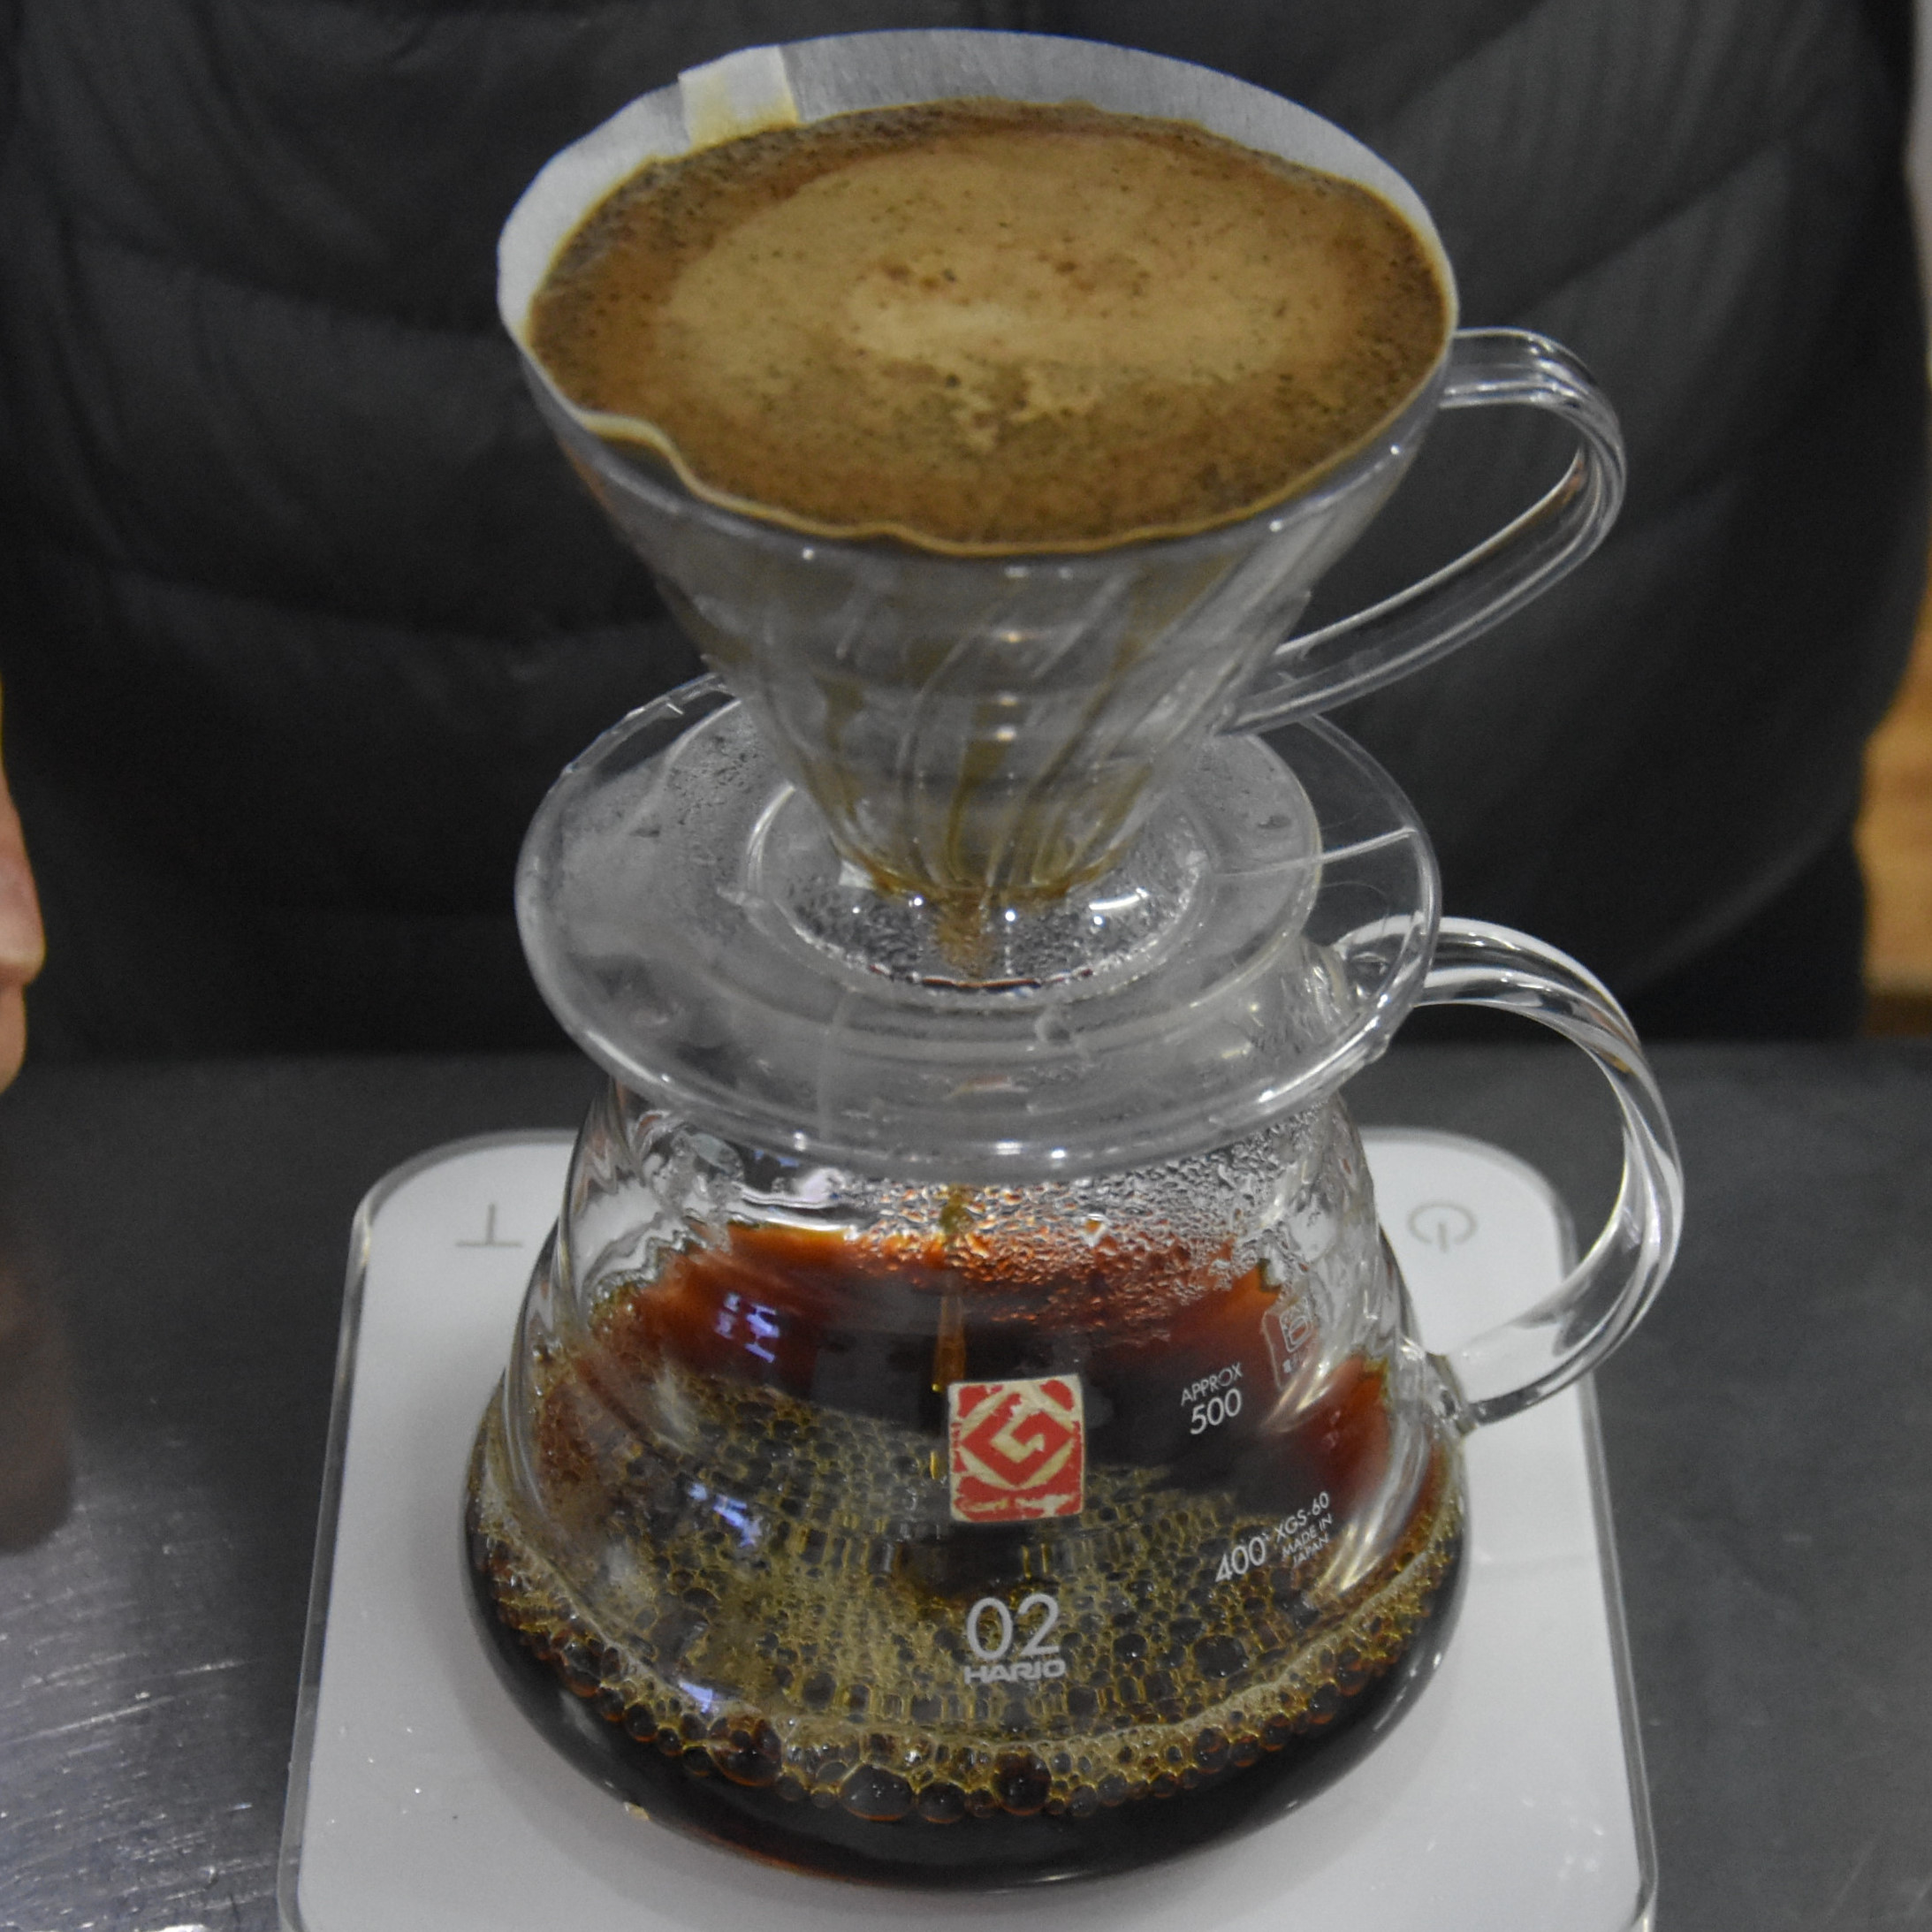 My V60, of a washed Yunnan coffee, grown in China, and roasted and served by Manner Coffee, Shanghai.